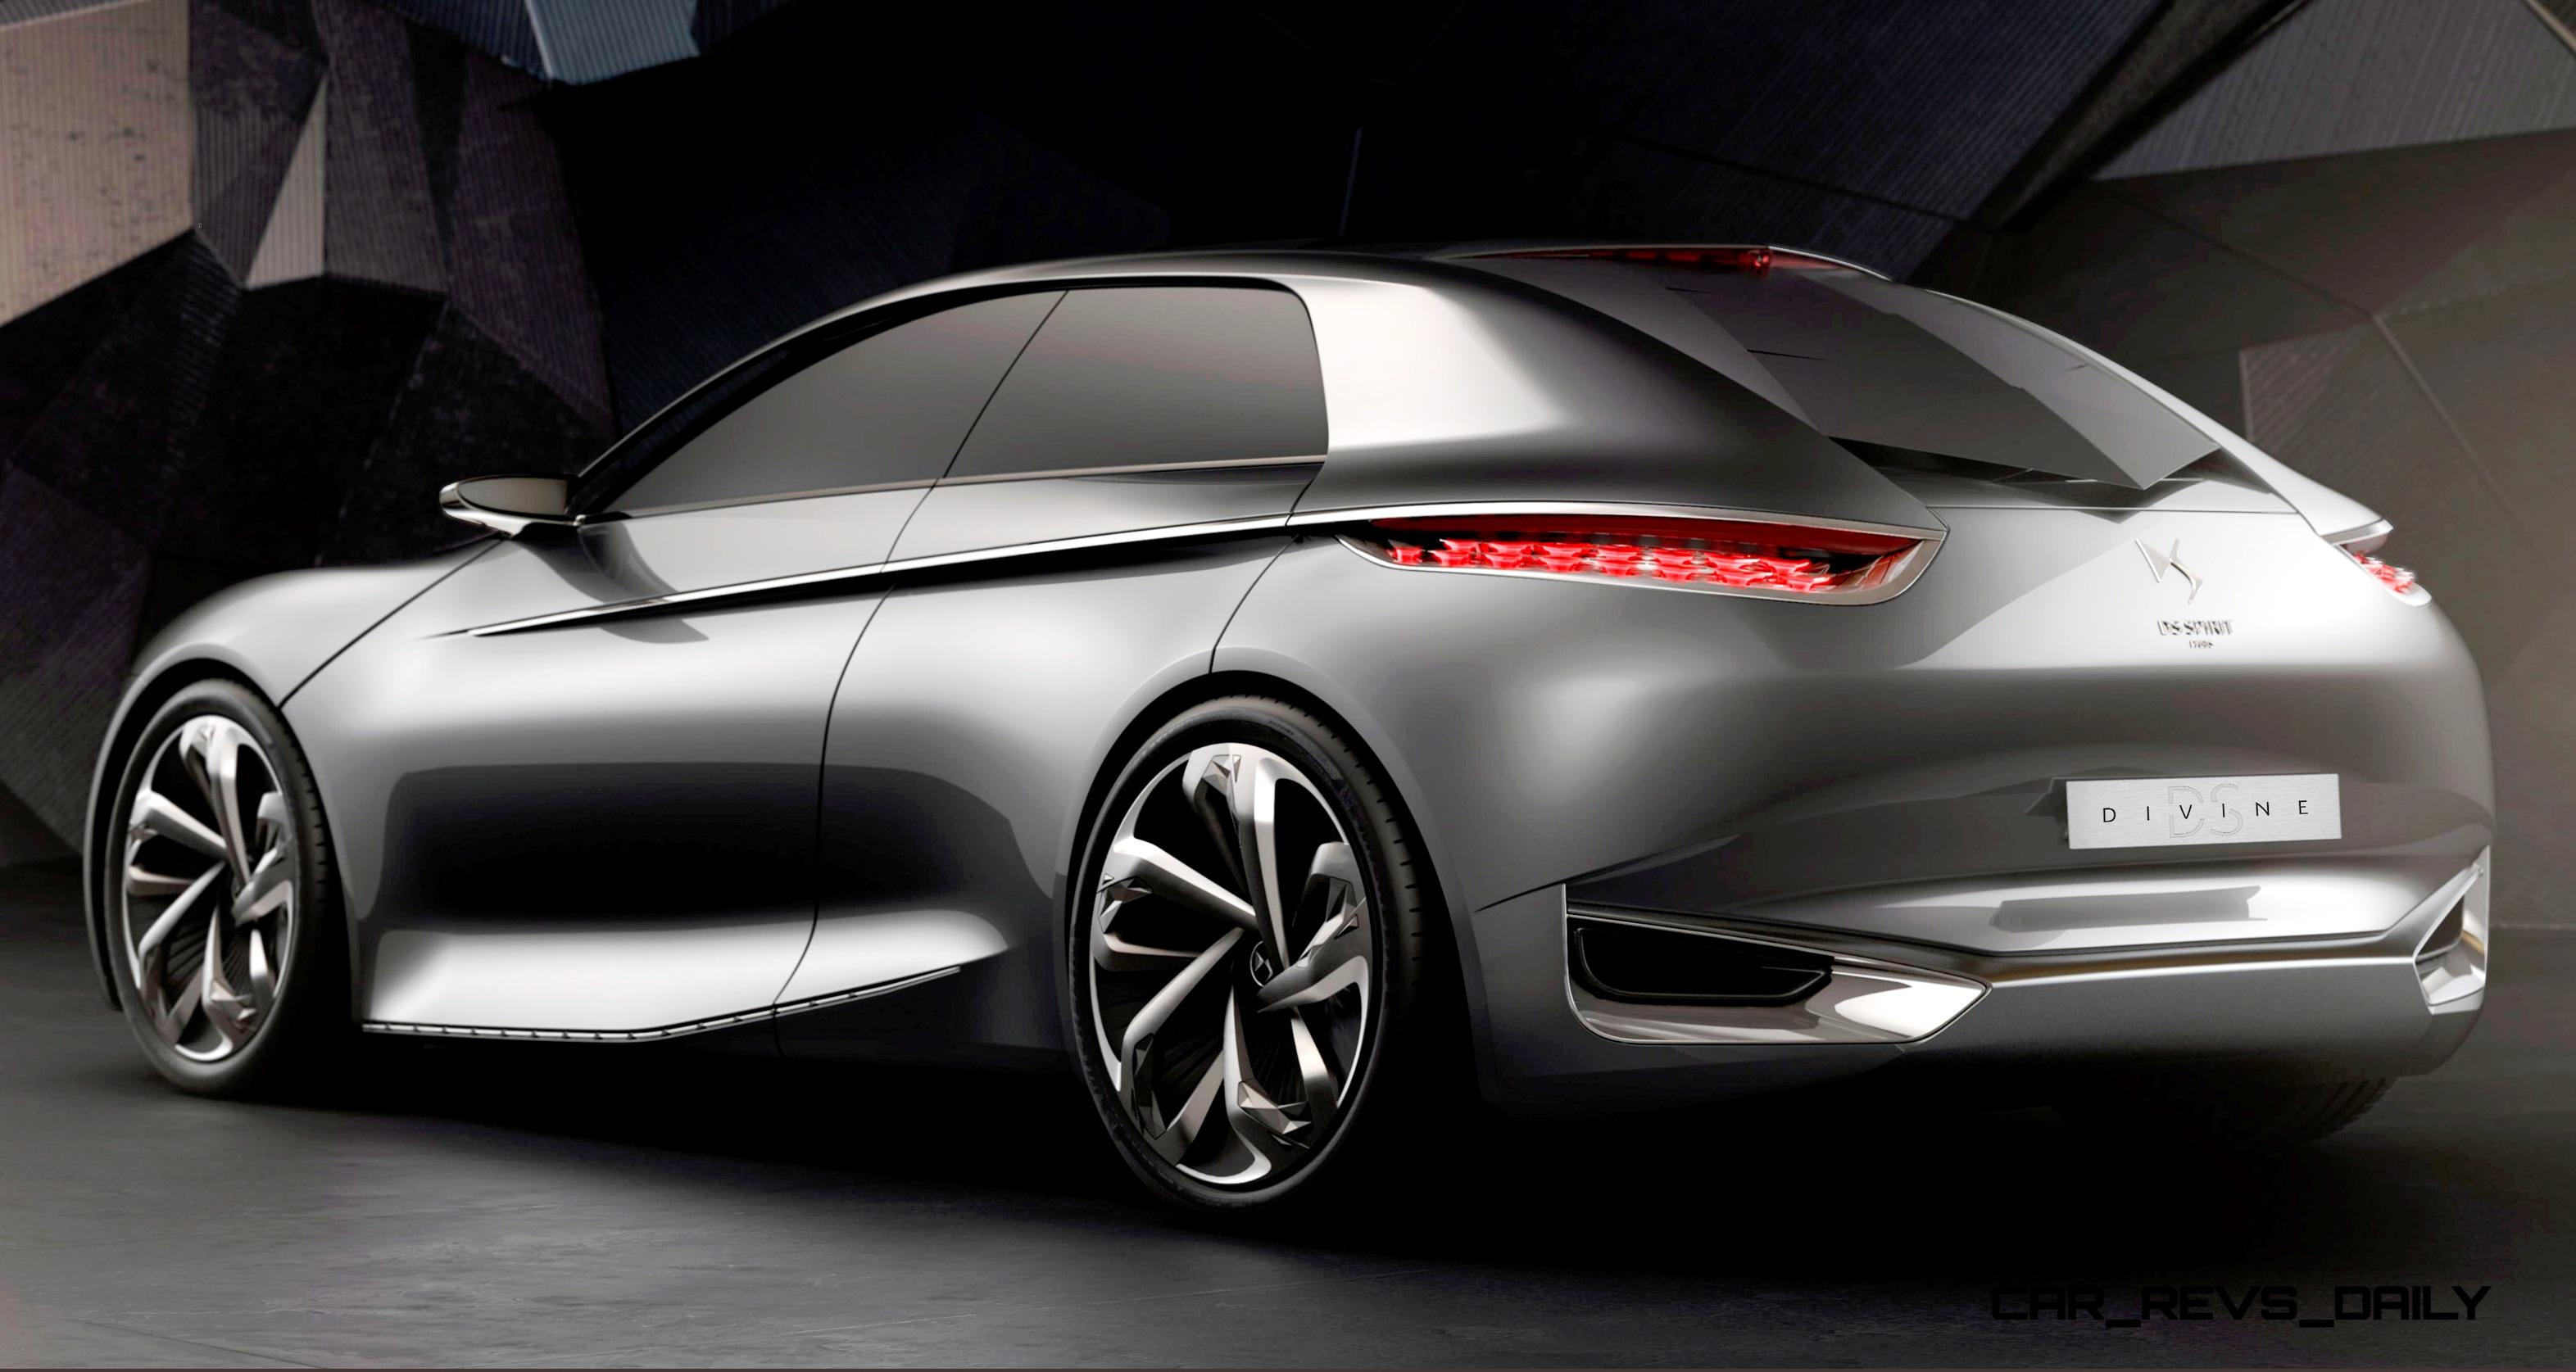 citroen divine ds concept for paris 2014 shows way for 2016 ds4. Black Bedroom Furniture Sets. Home Design Ideas